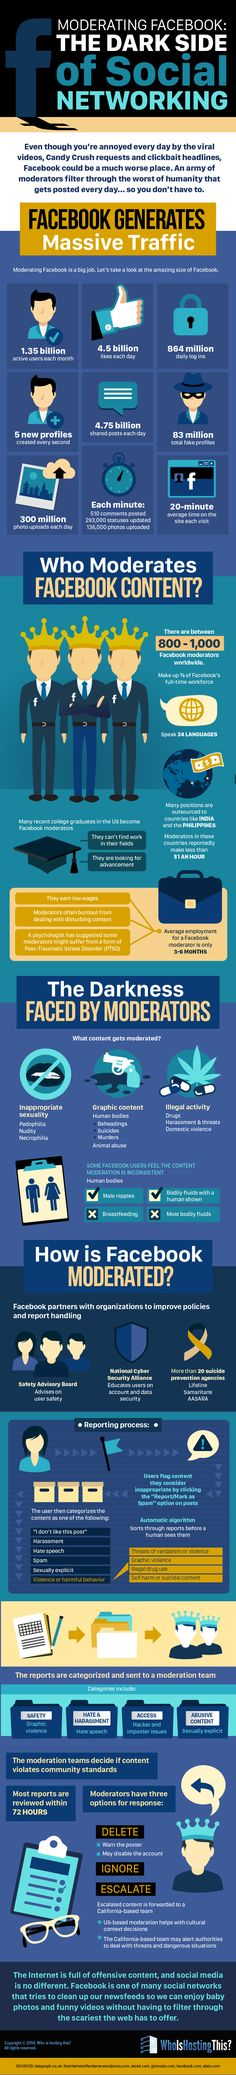 Moderating Facebook: The Dark Side of Social Networking - #infographic